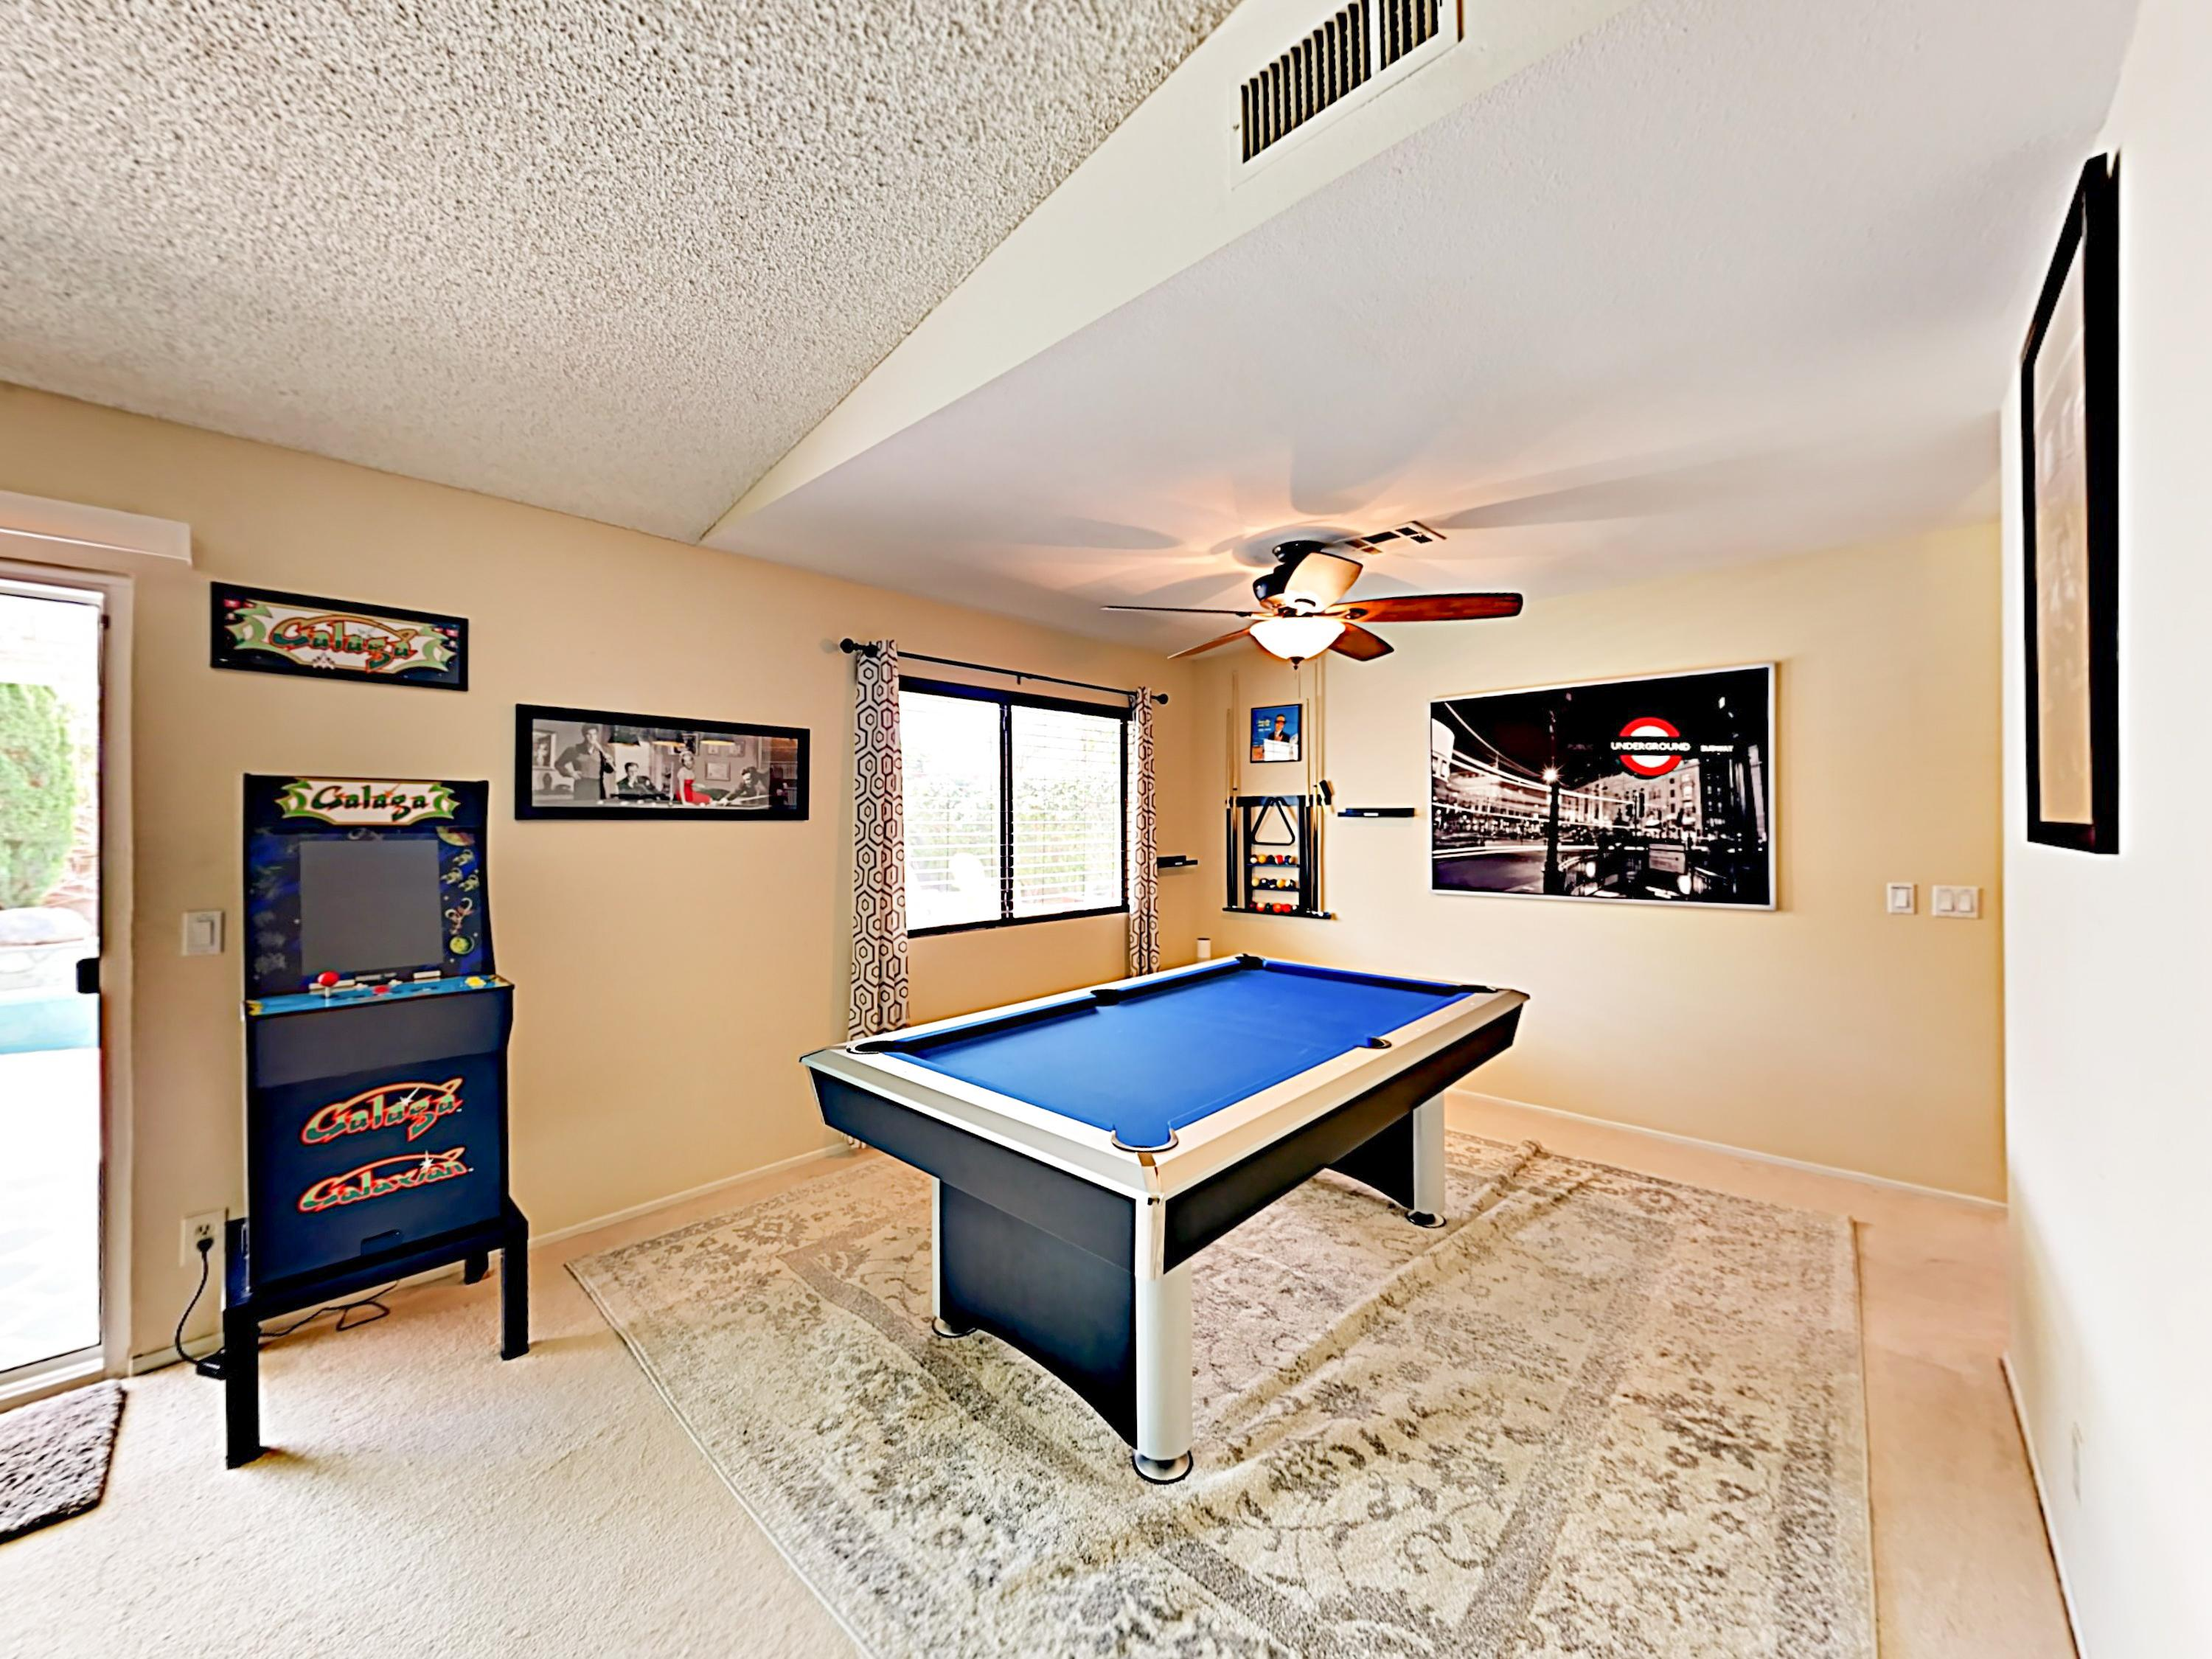 Play a fun arcade game or make use of the billiards table!